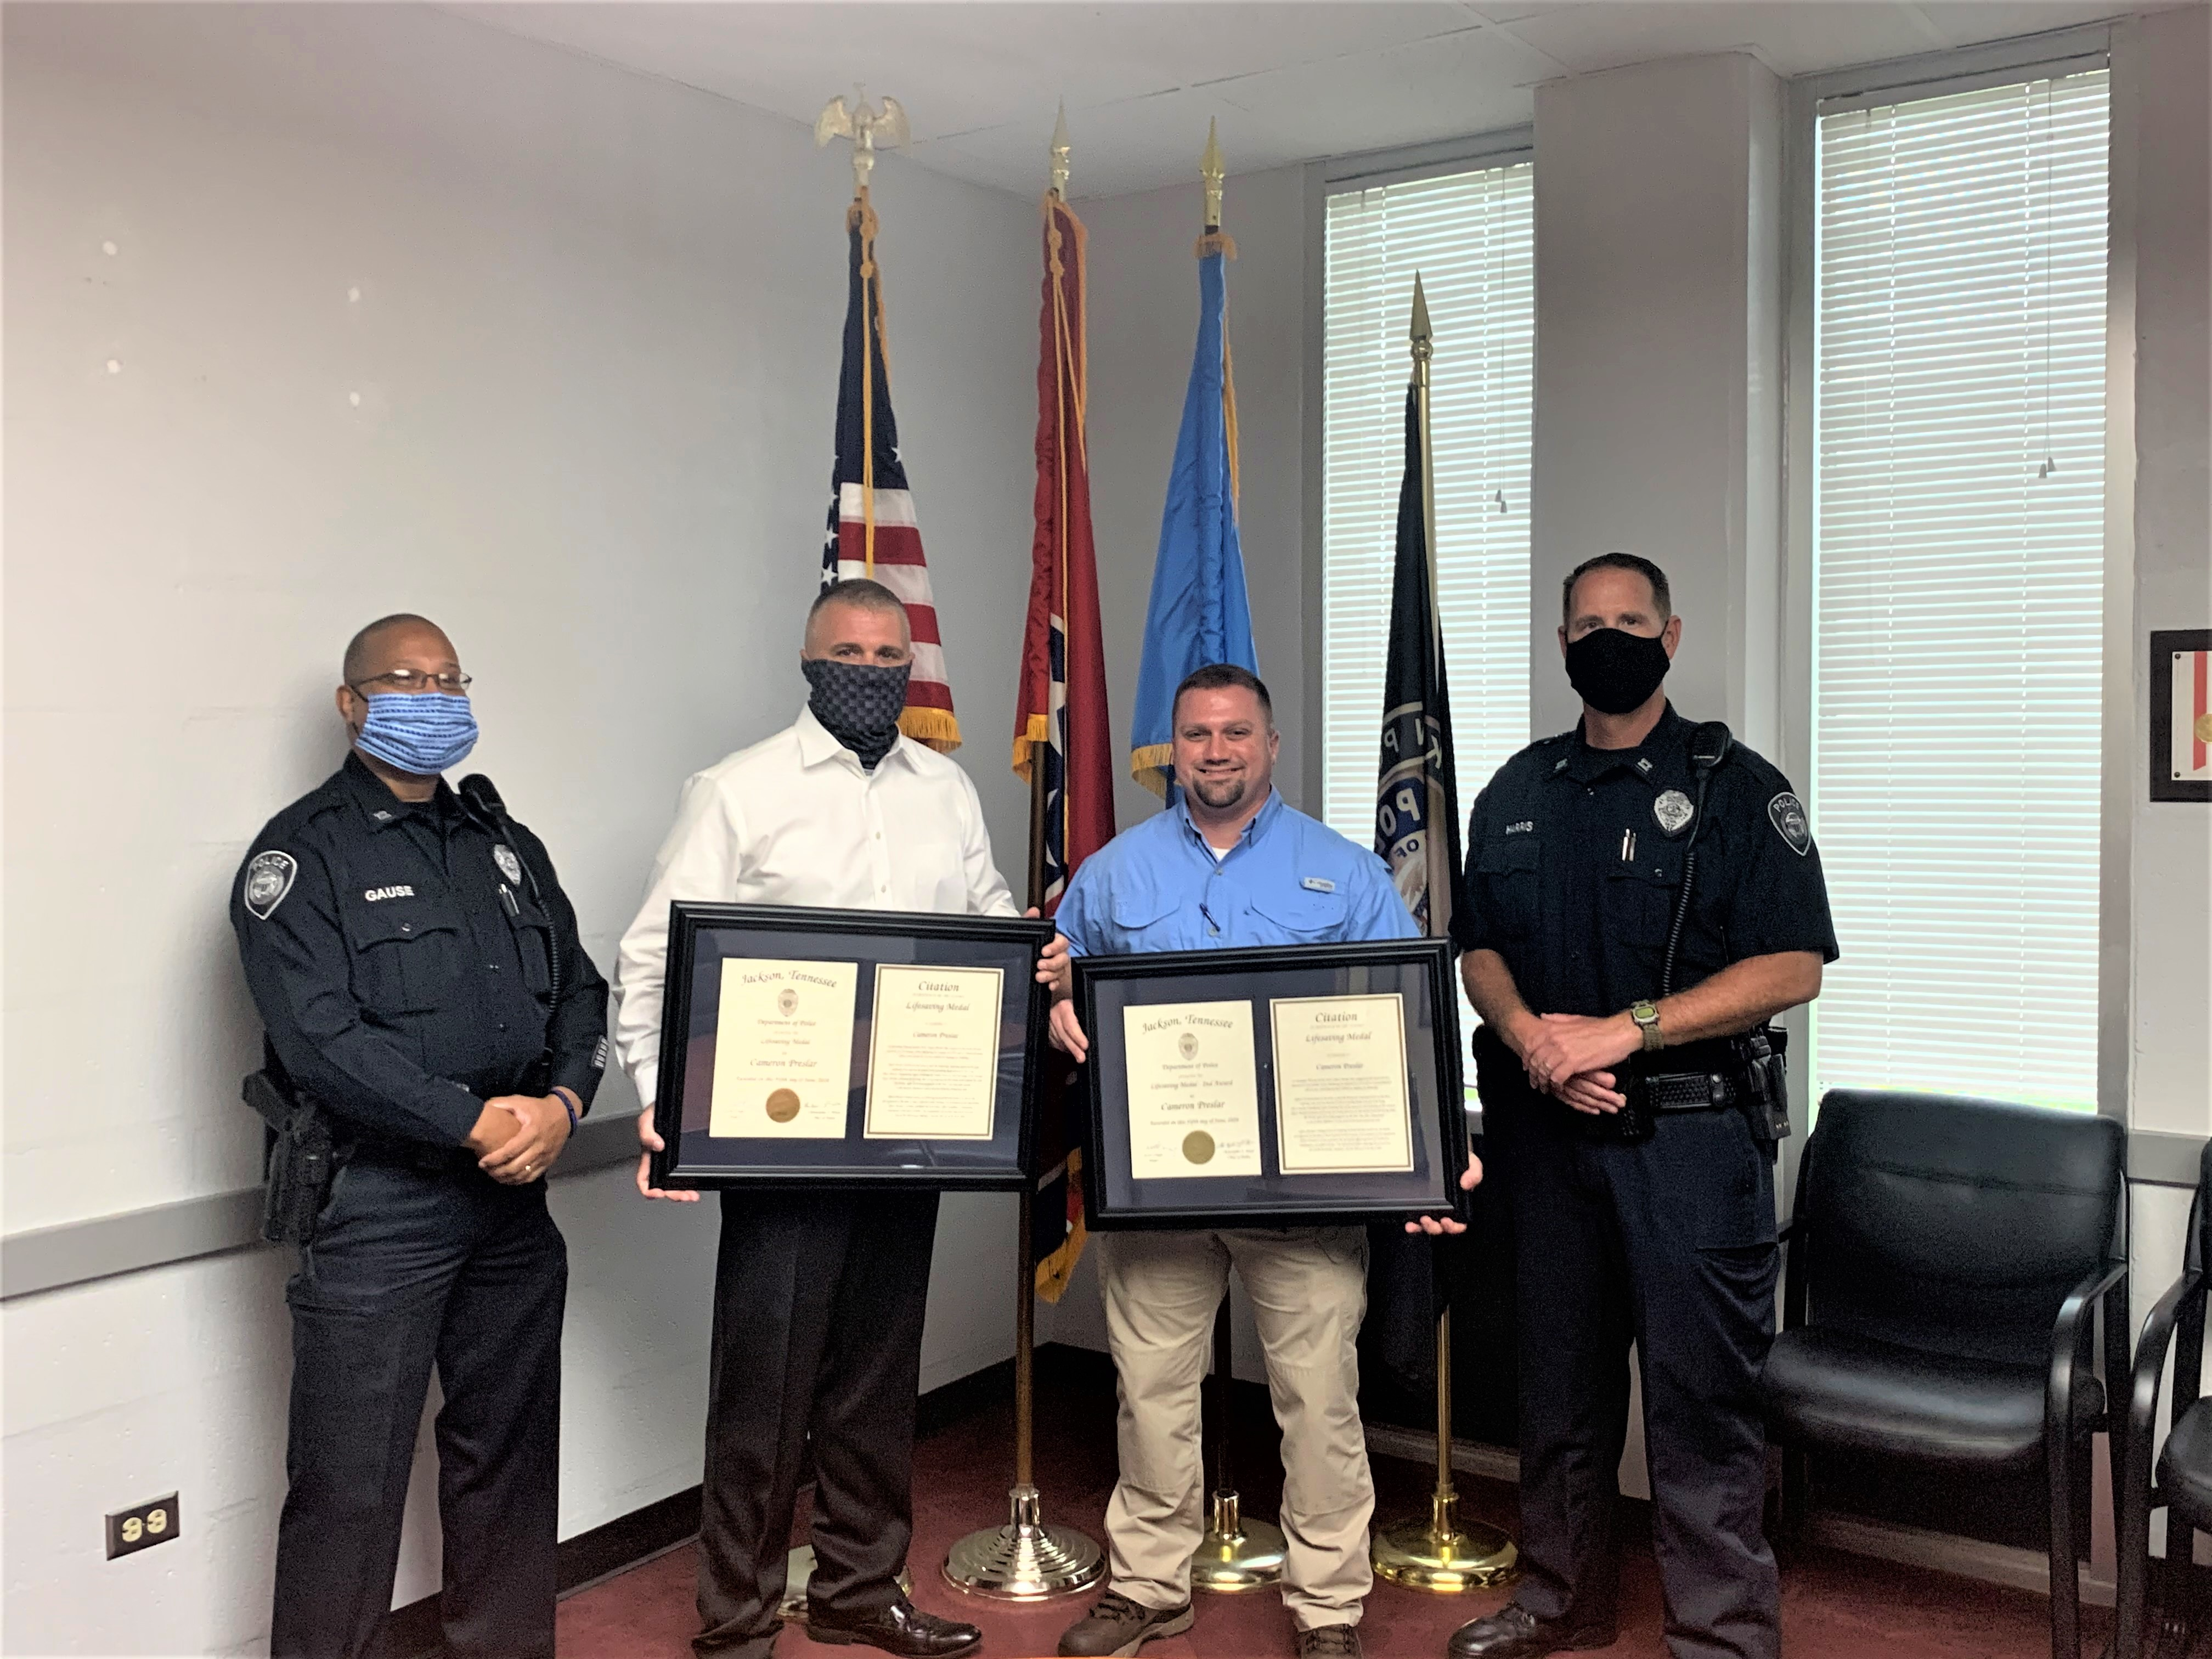 Former Jackson Police Officer receives medal for heroic act.